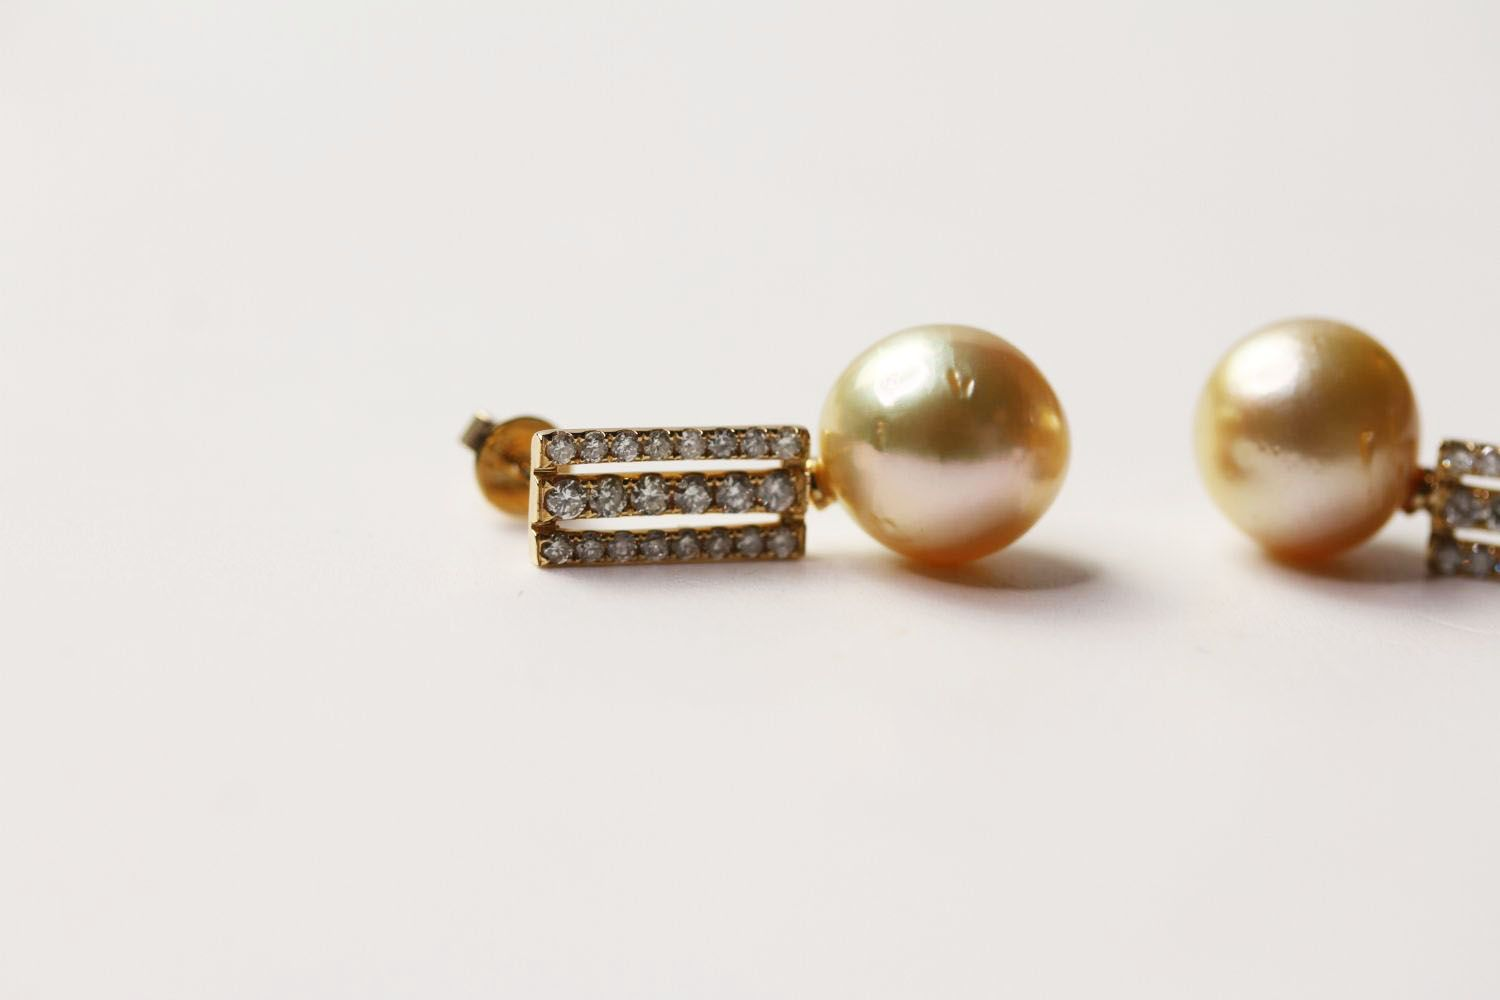 Pair Of Pearl & Diamond Earrings, set with 2 cultured south sea pearls, 44 round brilliant cut - Image 2 of 3